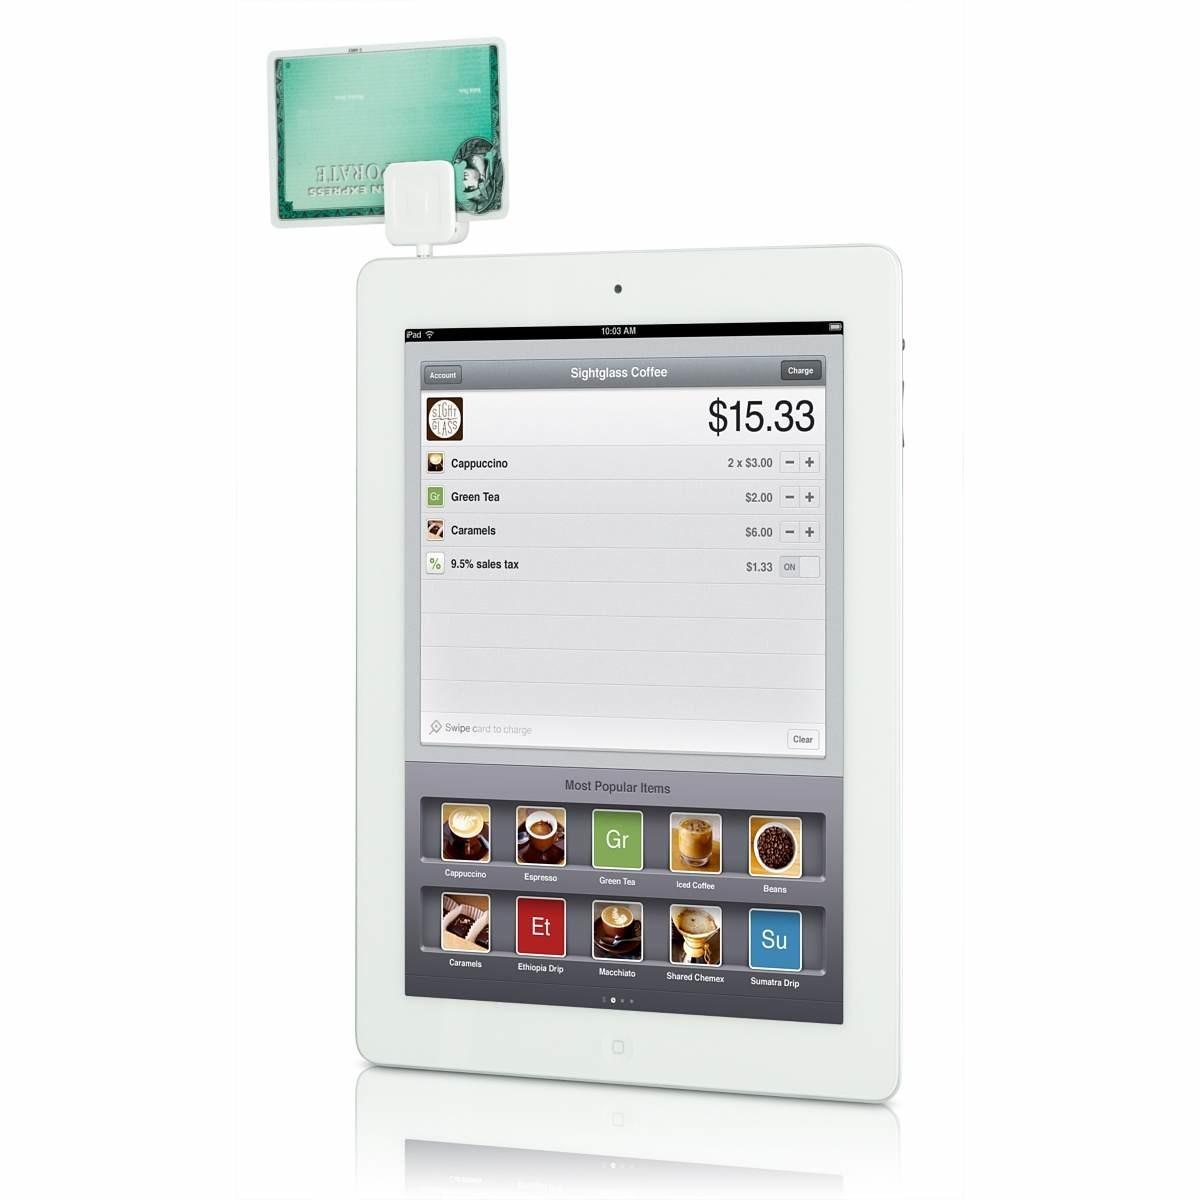 Square Credit Card Reader Iphone Ipad Ipod Touch Now